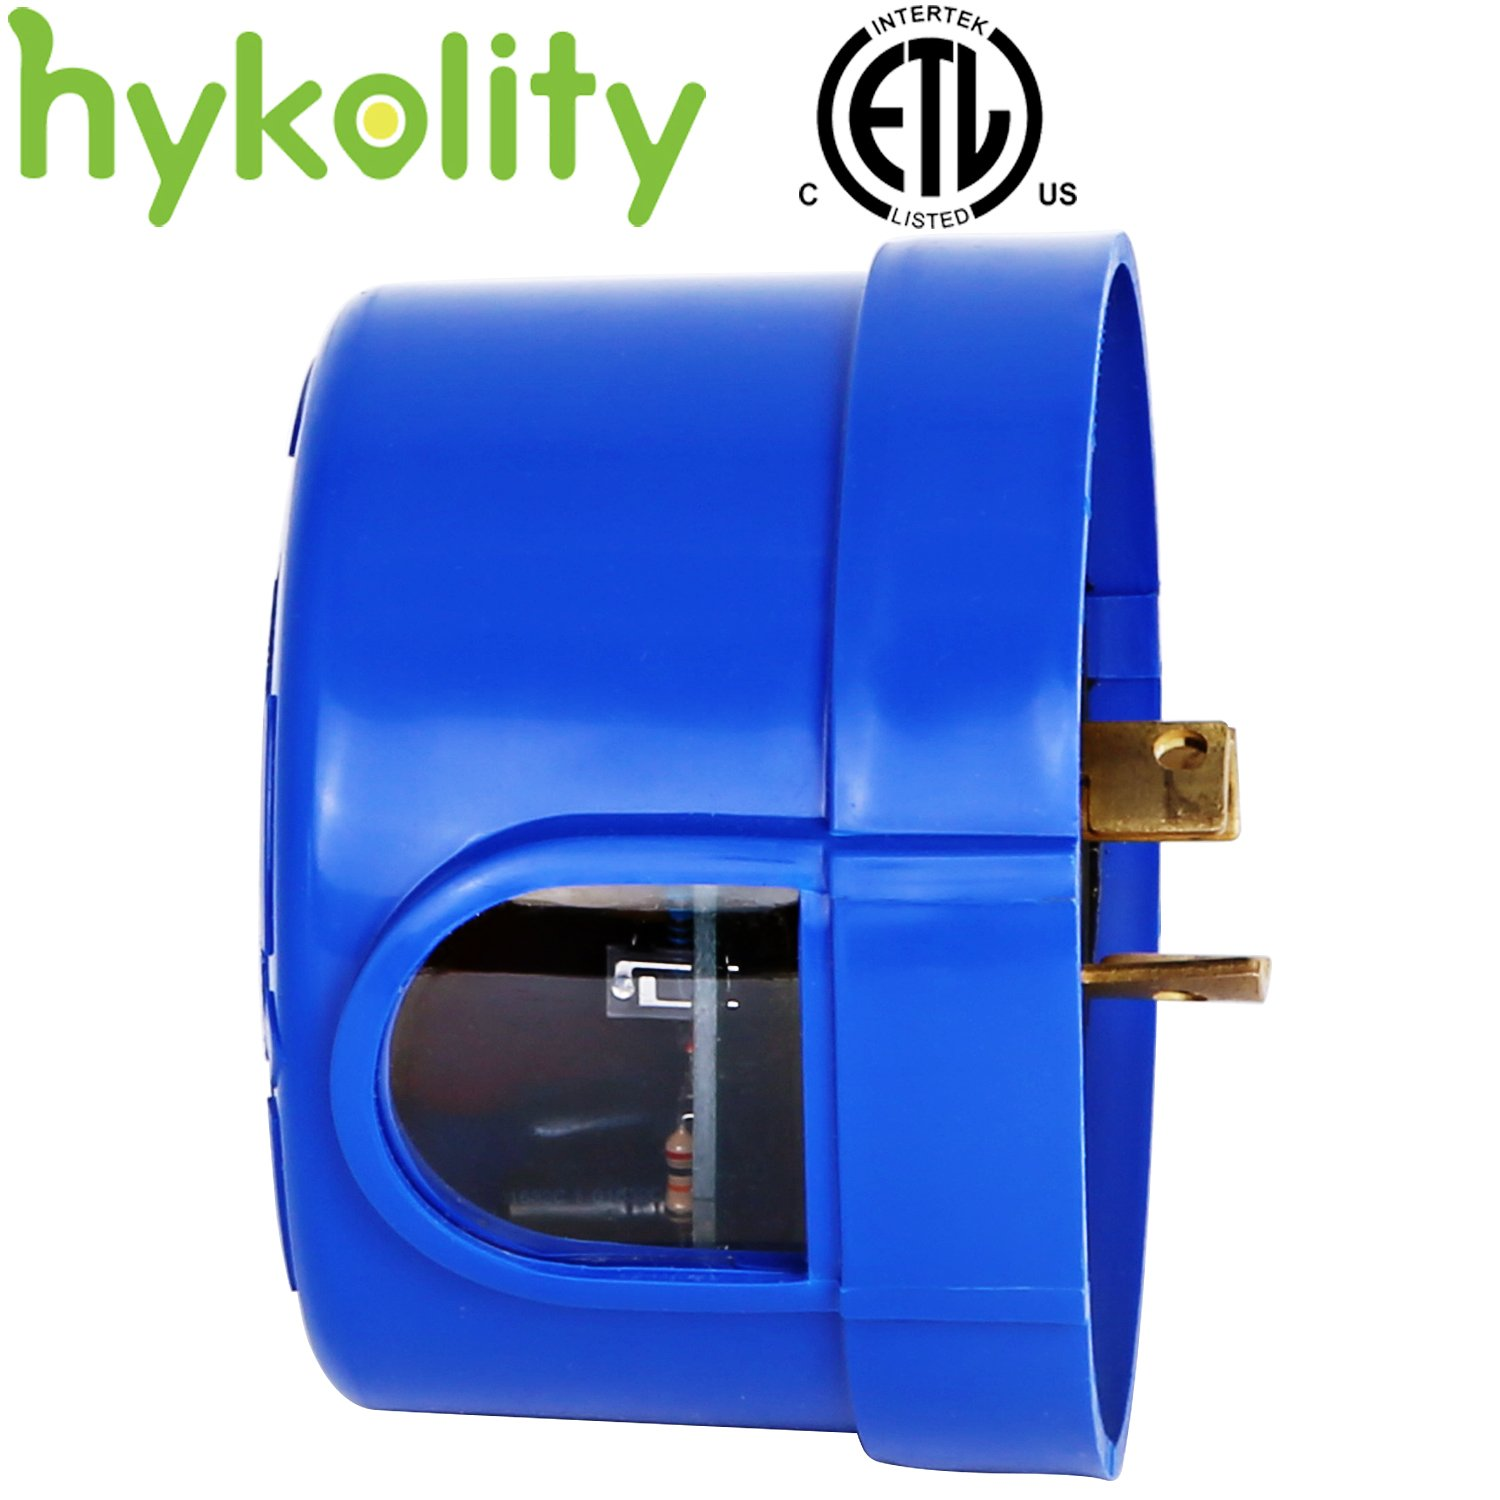 Hykolity Outdoor Twist to Lock Dusk to Dawn Auto On/Off Photocell Control Sensor 110-277V for Shoebox, Pole Lights, LED Street Lighting Fixture